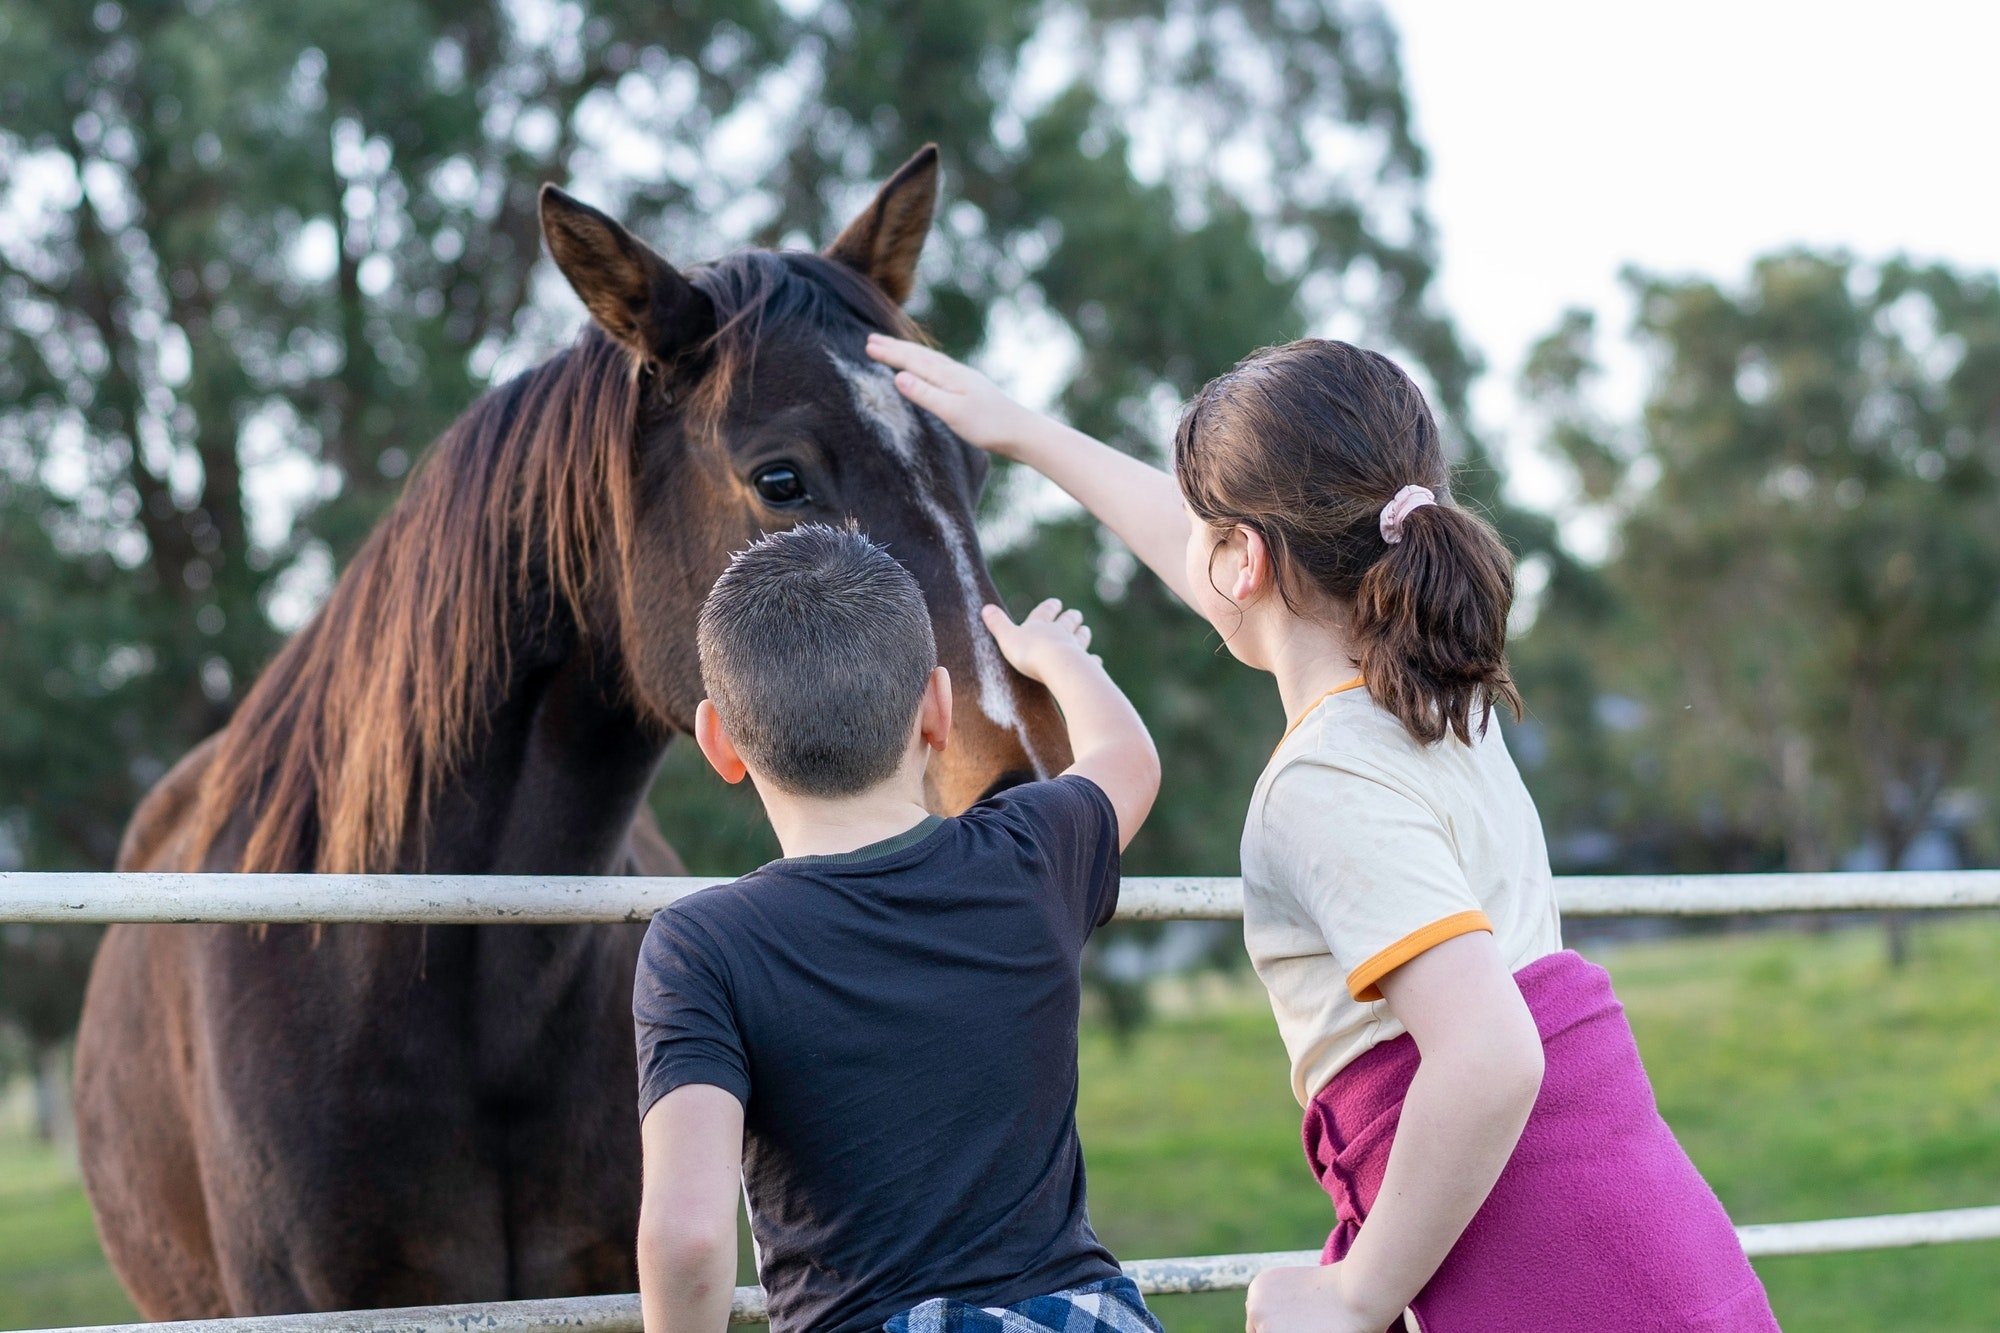 two children patting a horse on a farm, view from behind of the children.